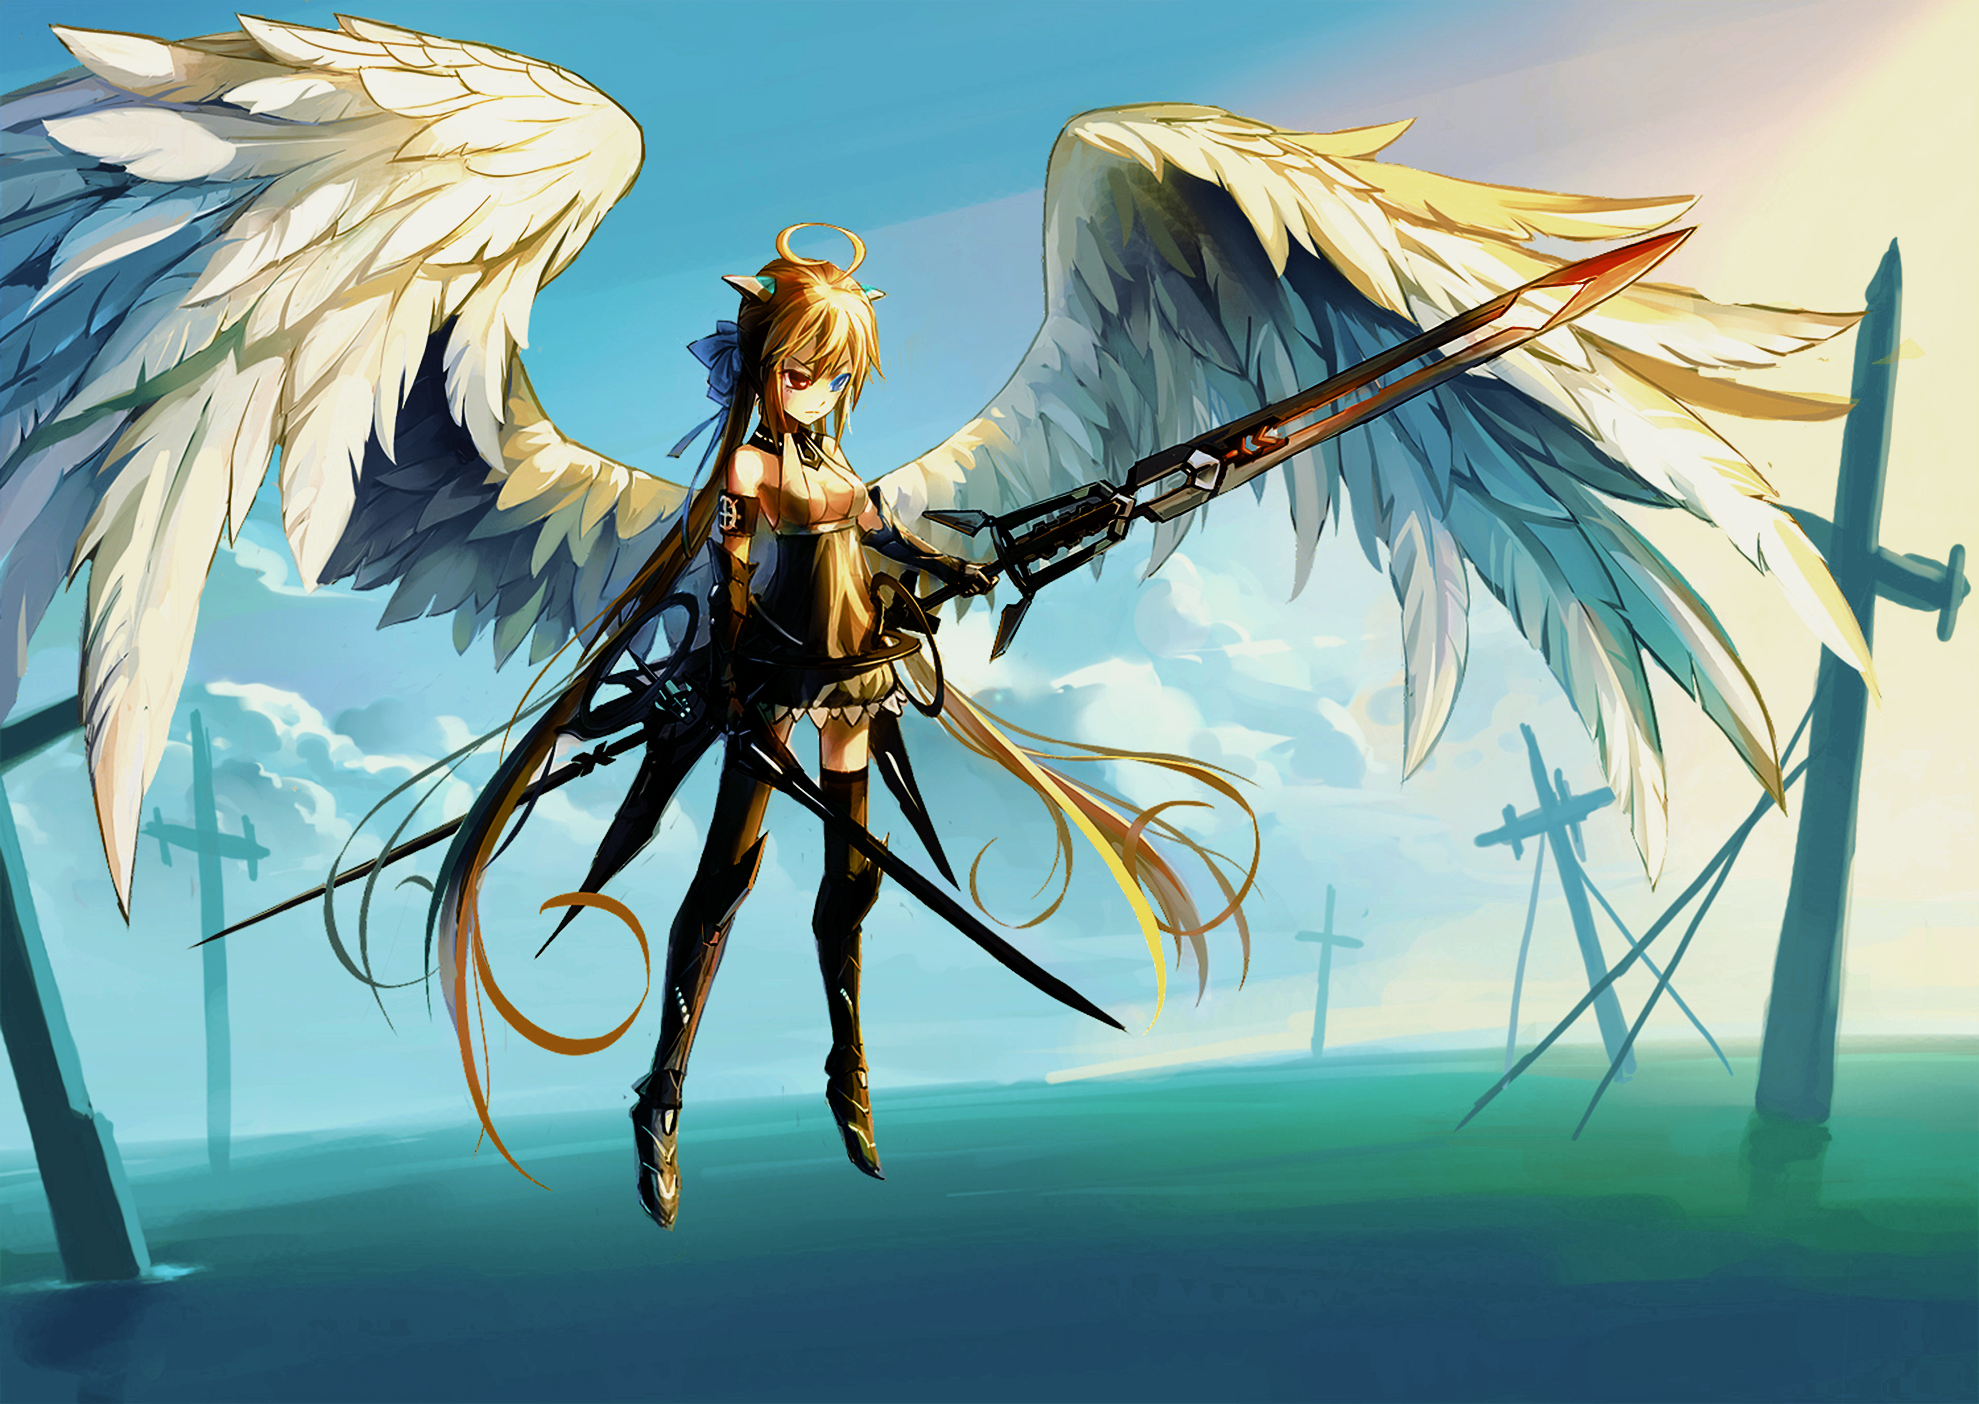 Backgrounds winged anime girl with swords by jch15jch15 - Girl with sword wallpaper ...